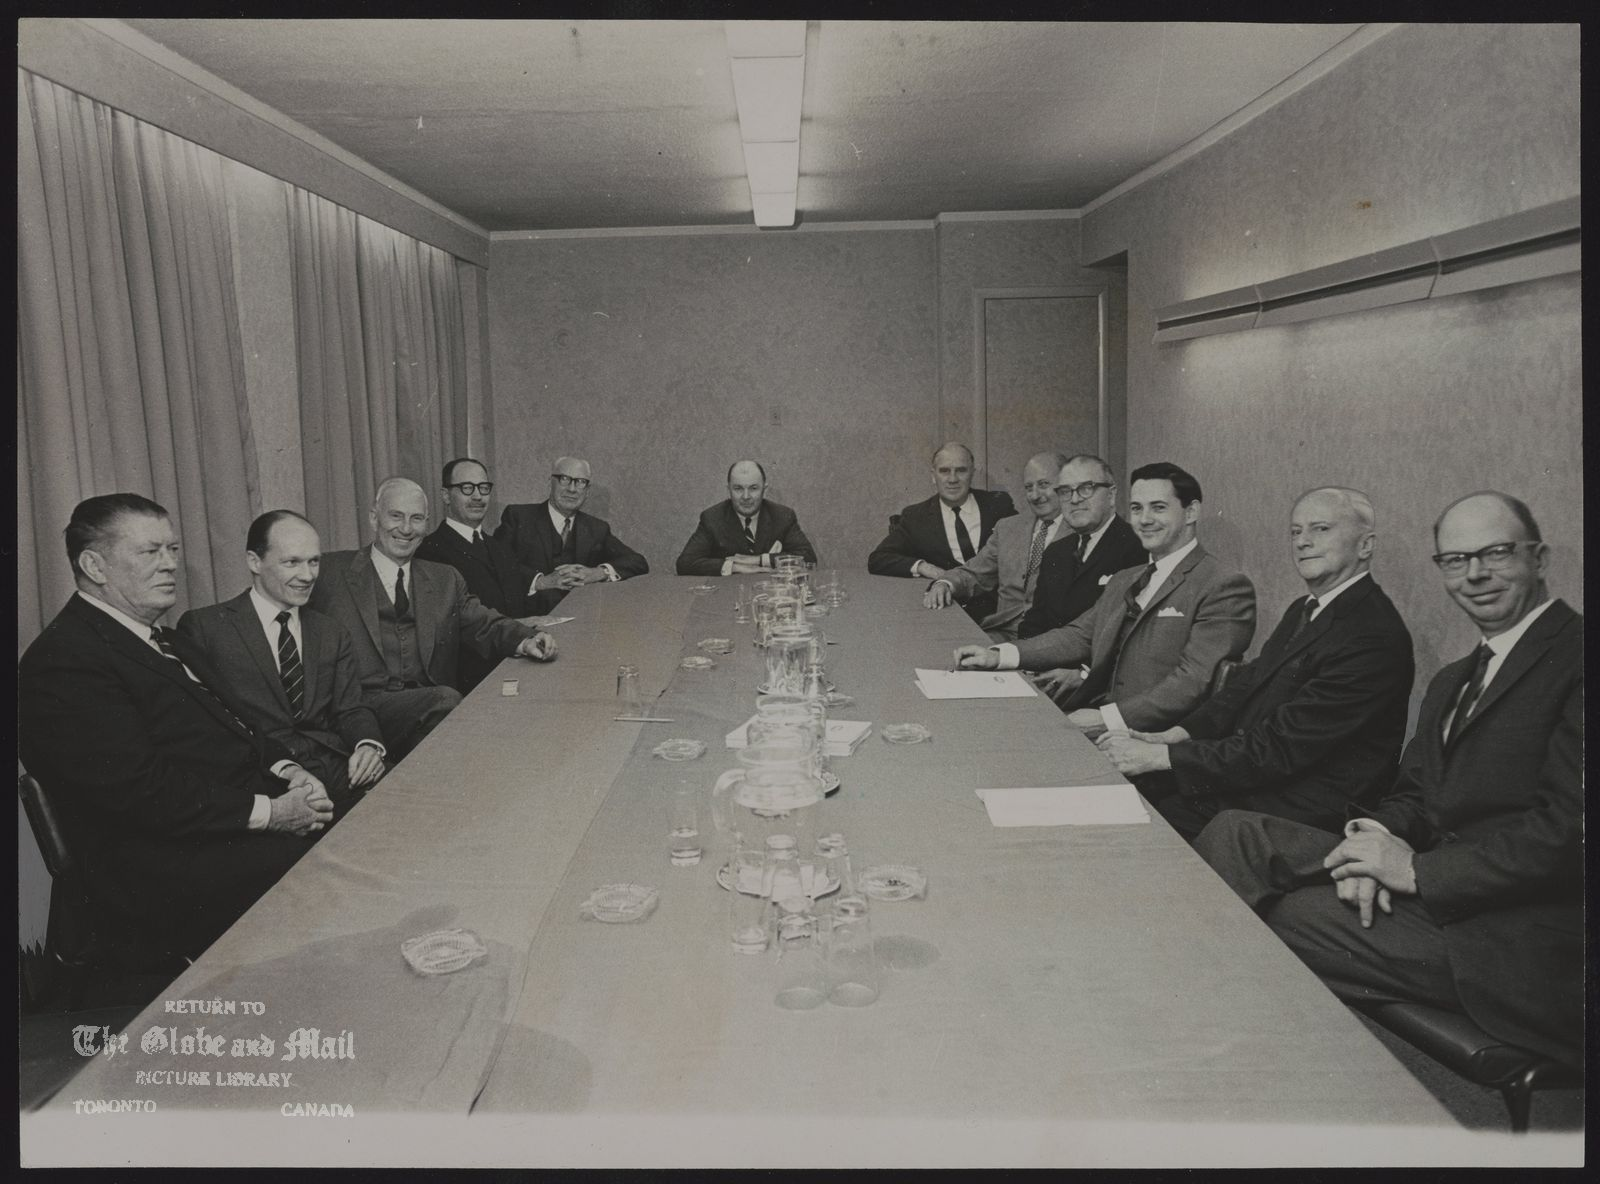 BURNS FOODS LIMITED Board of directors of Burns Foods Ltd. of Calgary met yesterday in Toronto, Attending, from left: Gene Tunney, Stamford, Conn.; G.E. Creber, Toronto; H. I. Price, Toronto; Raymond Dupuis, Montreal; W.A. Johnson, Winnipeg; A.J.E. Child, president; J. Howard Kelly, Calgary; C. A. Pollock, Kitchener, F.T. Sherk, Toronto; P.B. Hill, Toronto; H.S. Spicer, Hamilton; G.L. Burton, Claresholm, Alta. Absent are F.B. Brown, W.D. Cumings and R. Howard Webster, Company was first incorporated as P. Burns and Co. Ltd. in 1890.